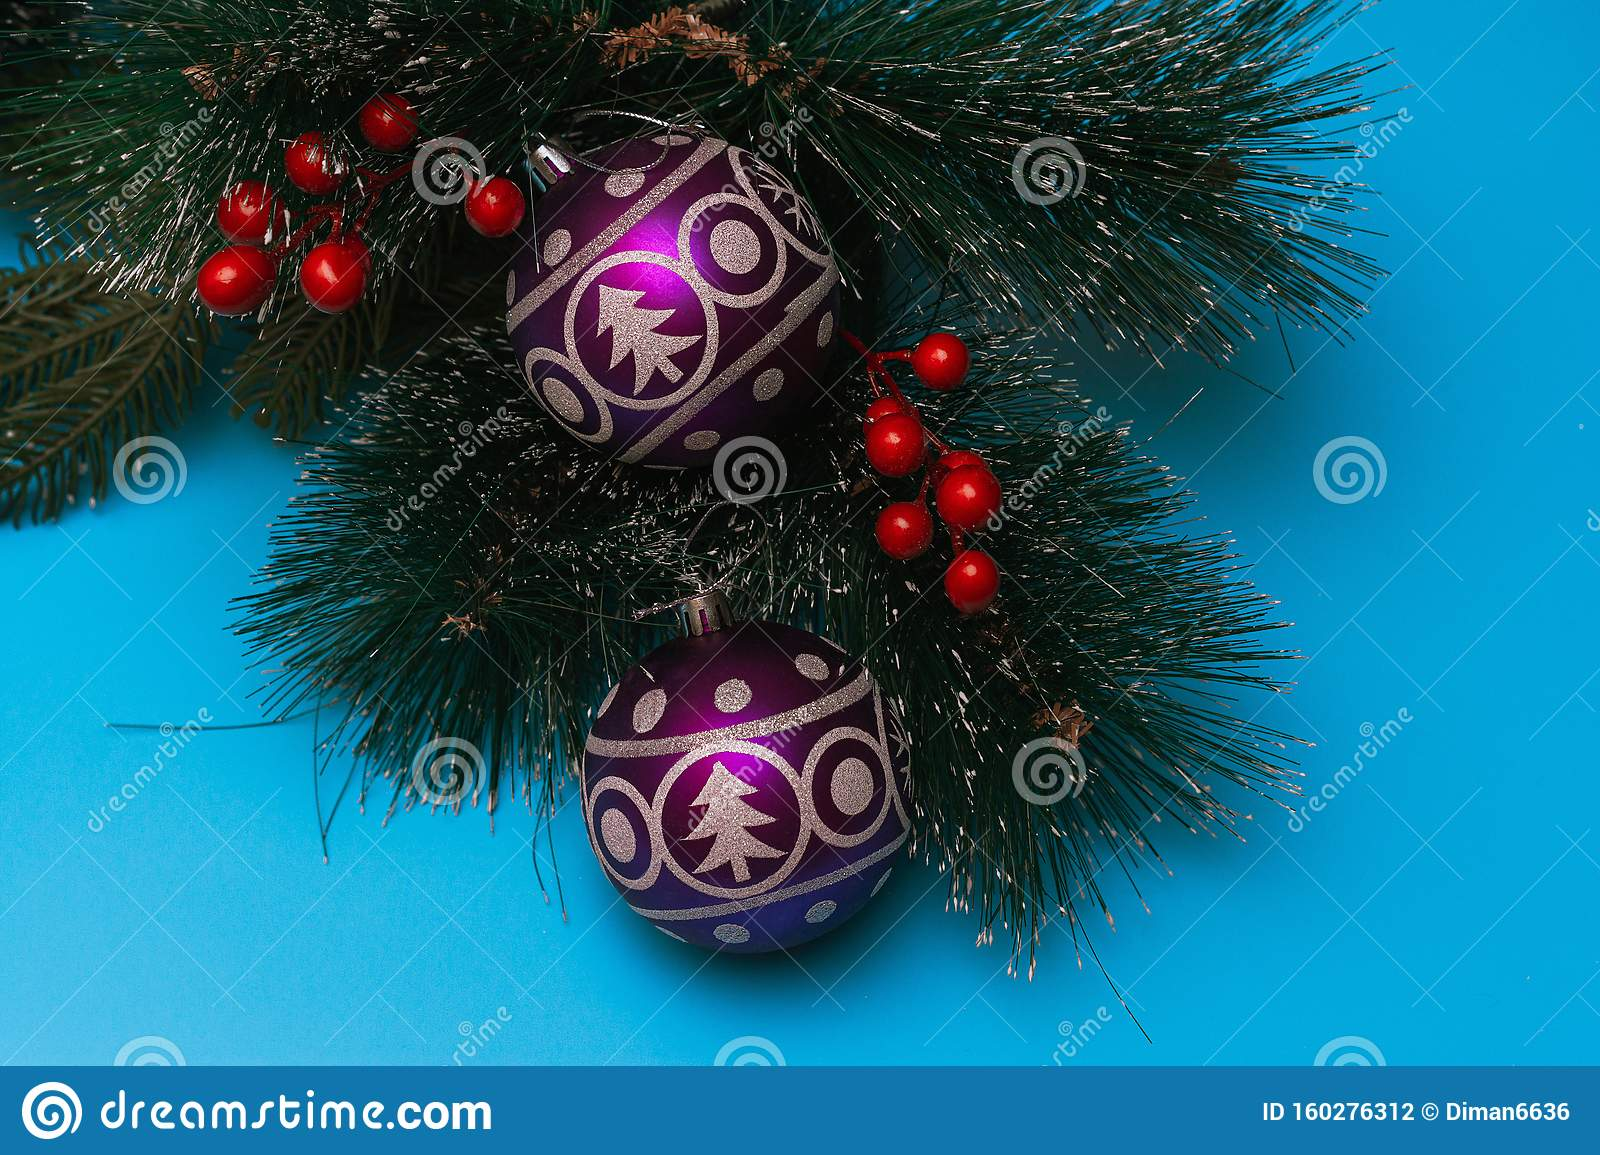 Two Purple Festive Balloons With The Image Of A Christmas Tree And Snowflakes Lie On Artificial Branches Of A Spruce Blue Stock Photo Image Of Detail Collection 160276312